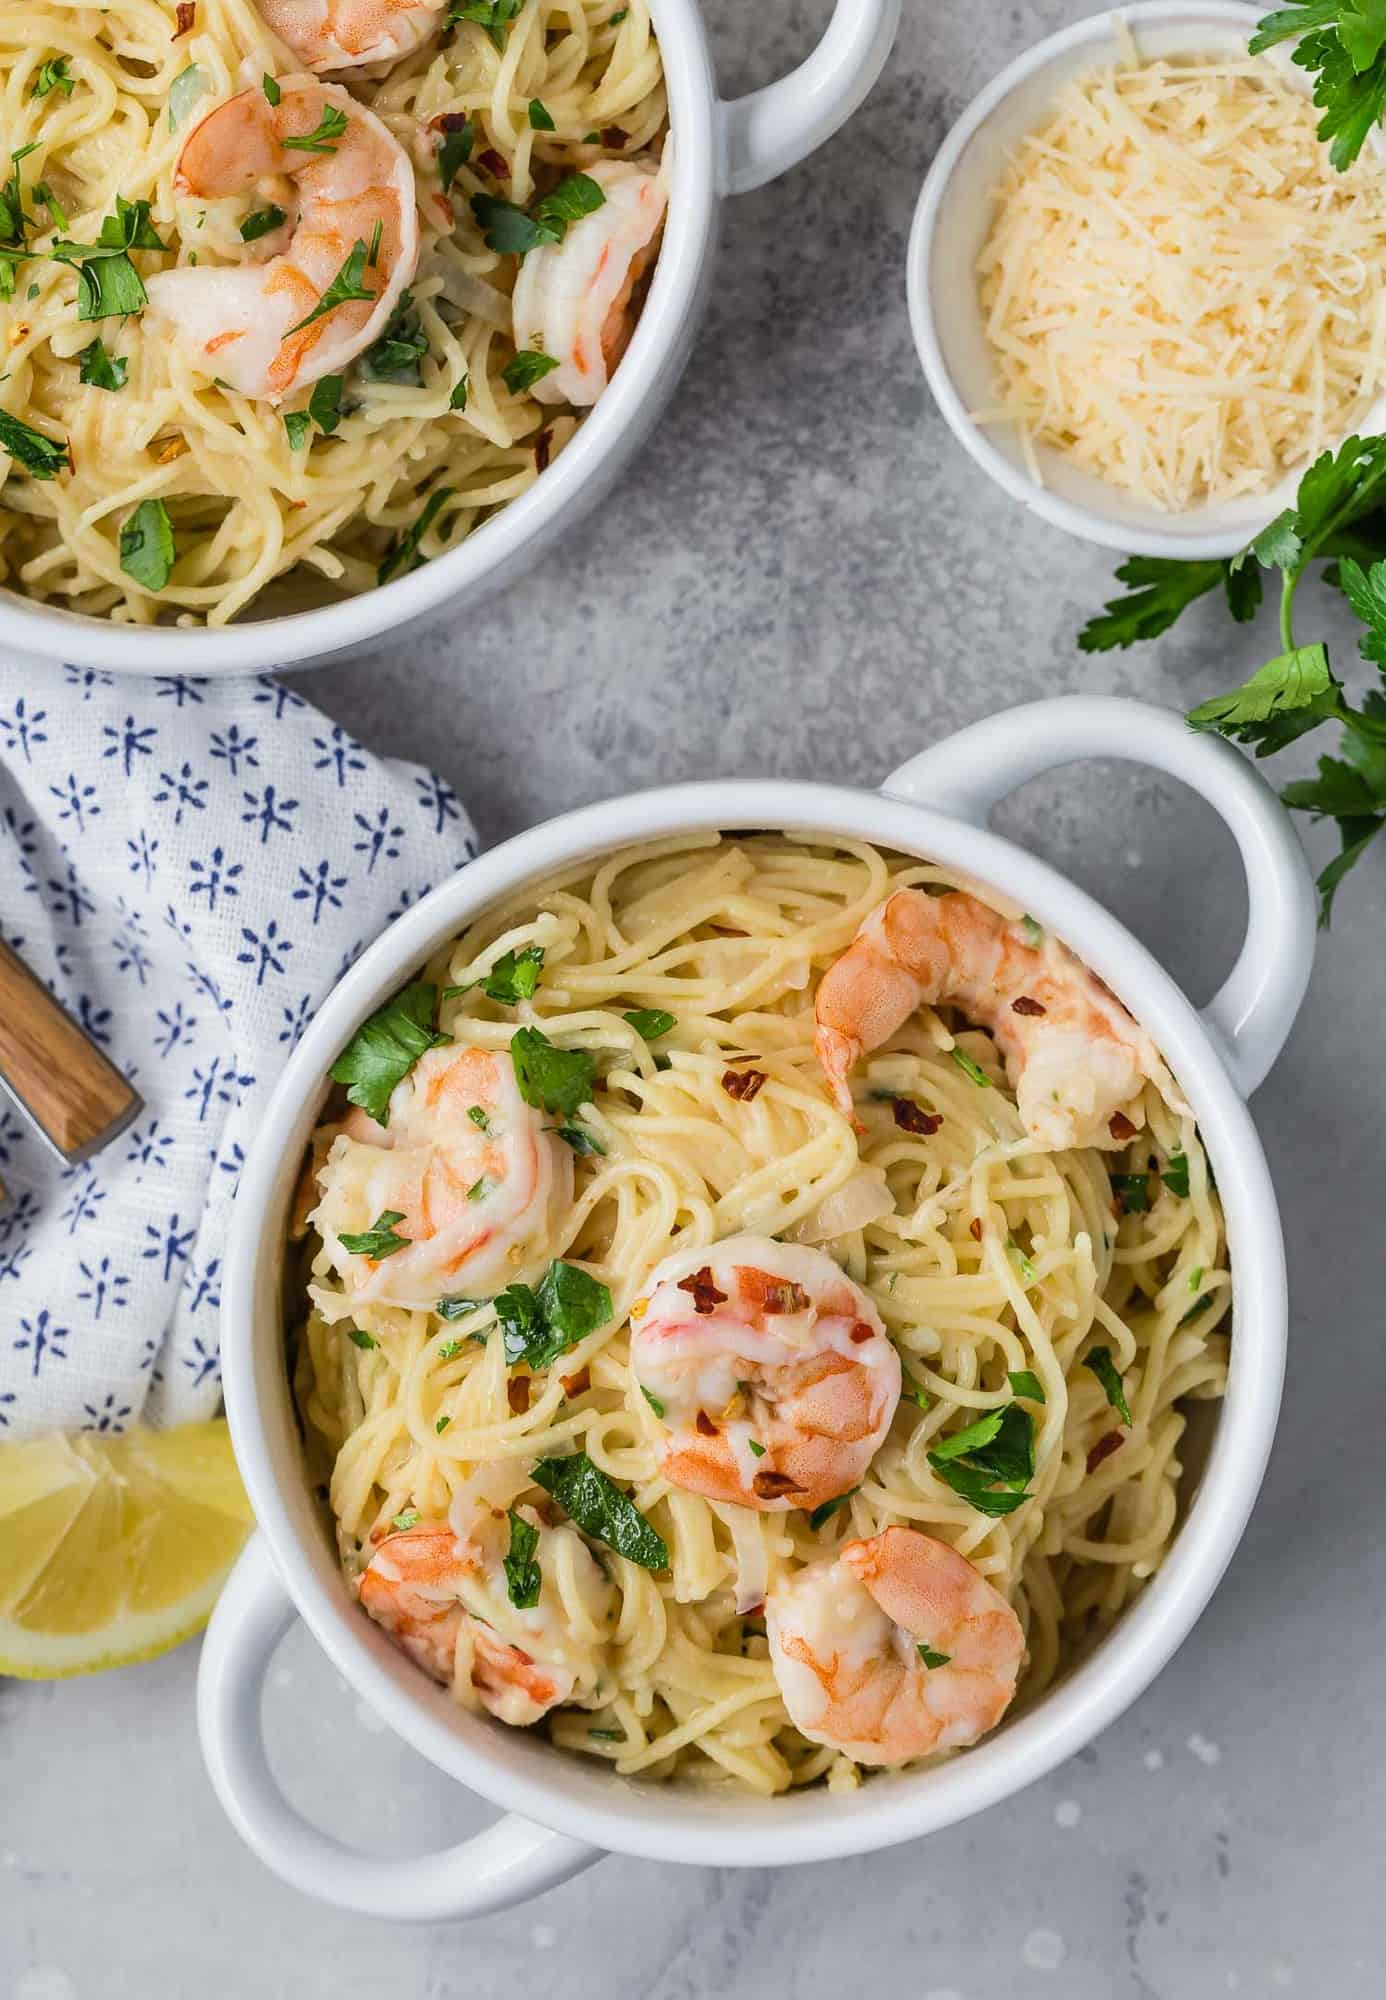 Overhead view of two bowls of shrimp pasta.